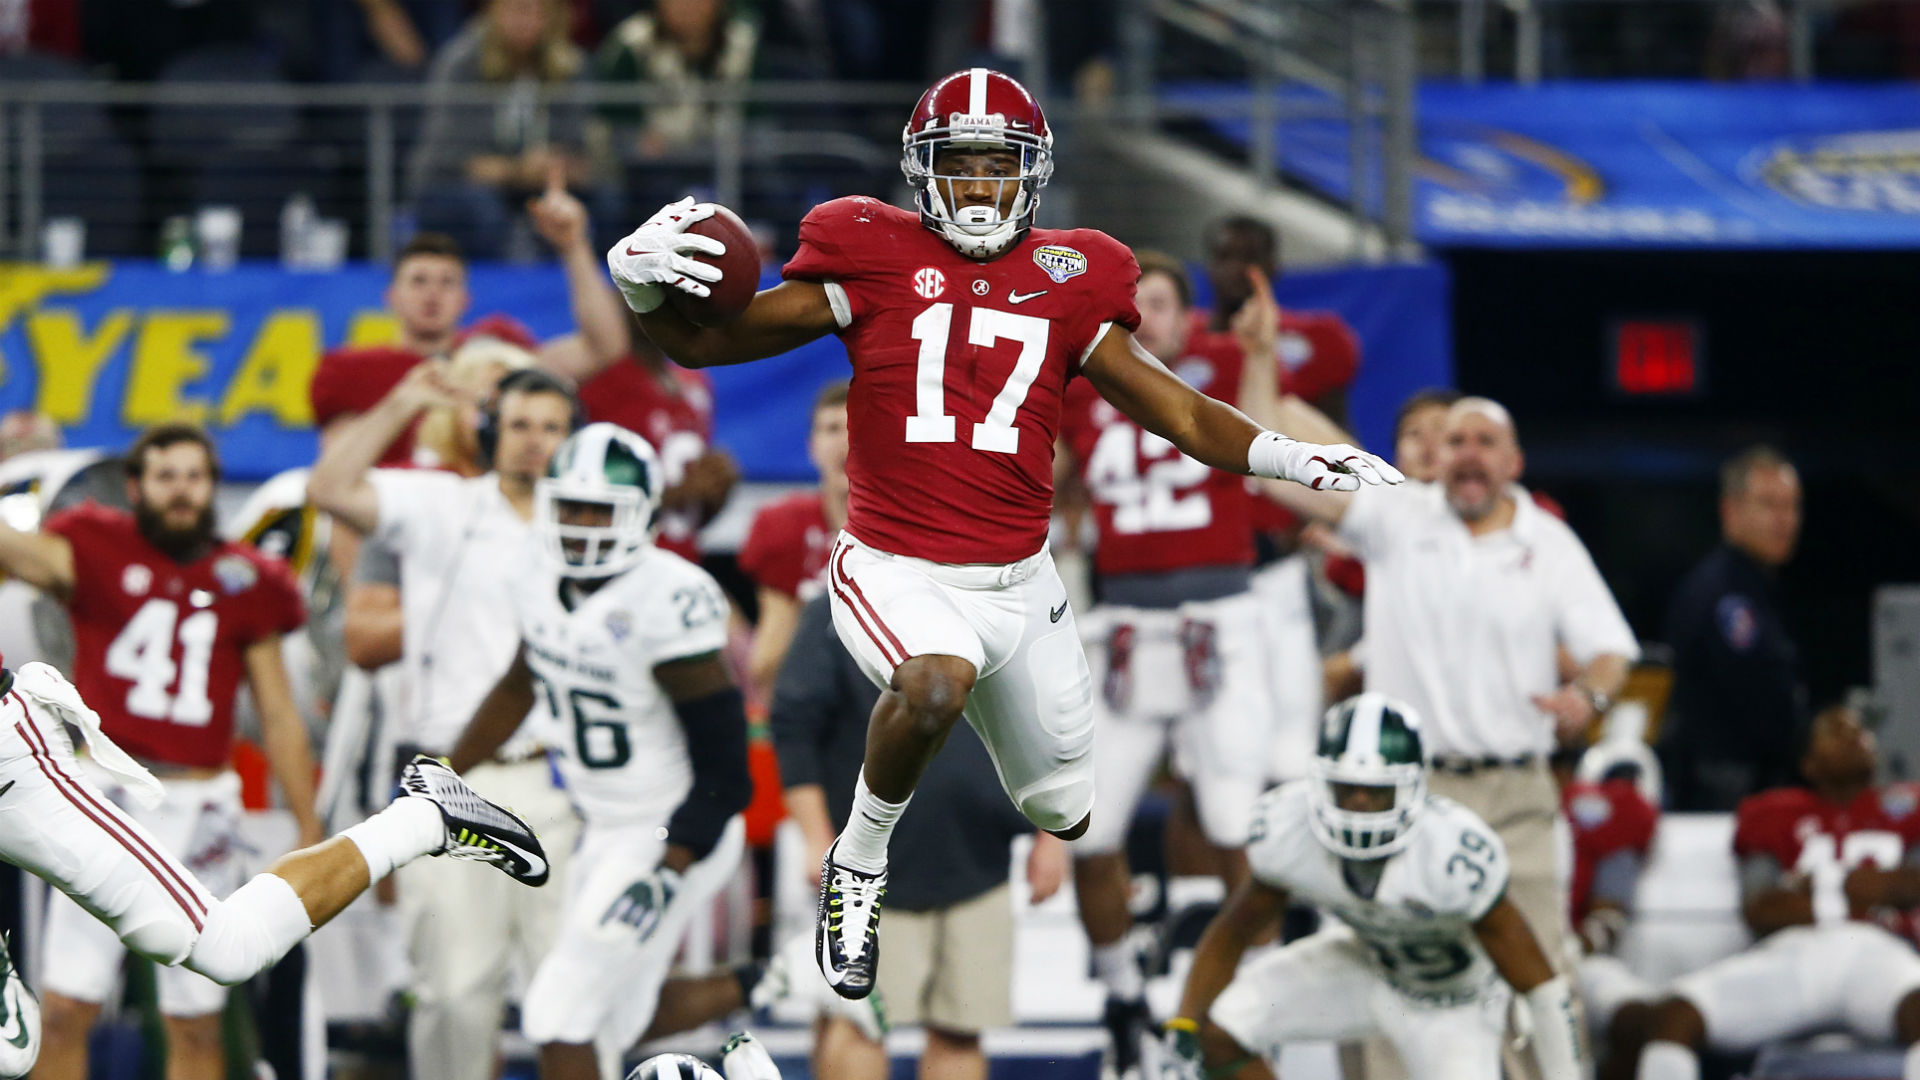 kenyan-drake-1116-usnews-getty-FTR